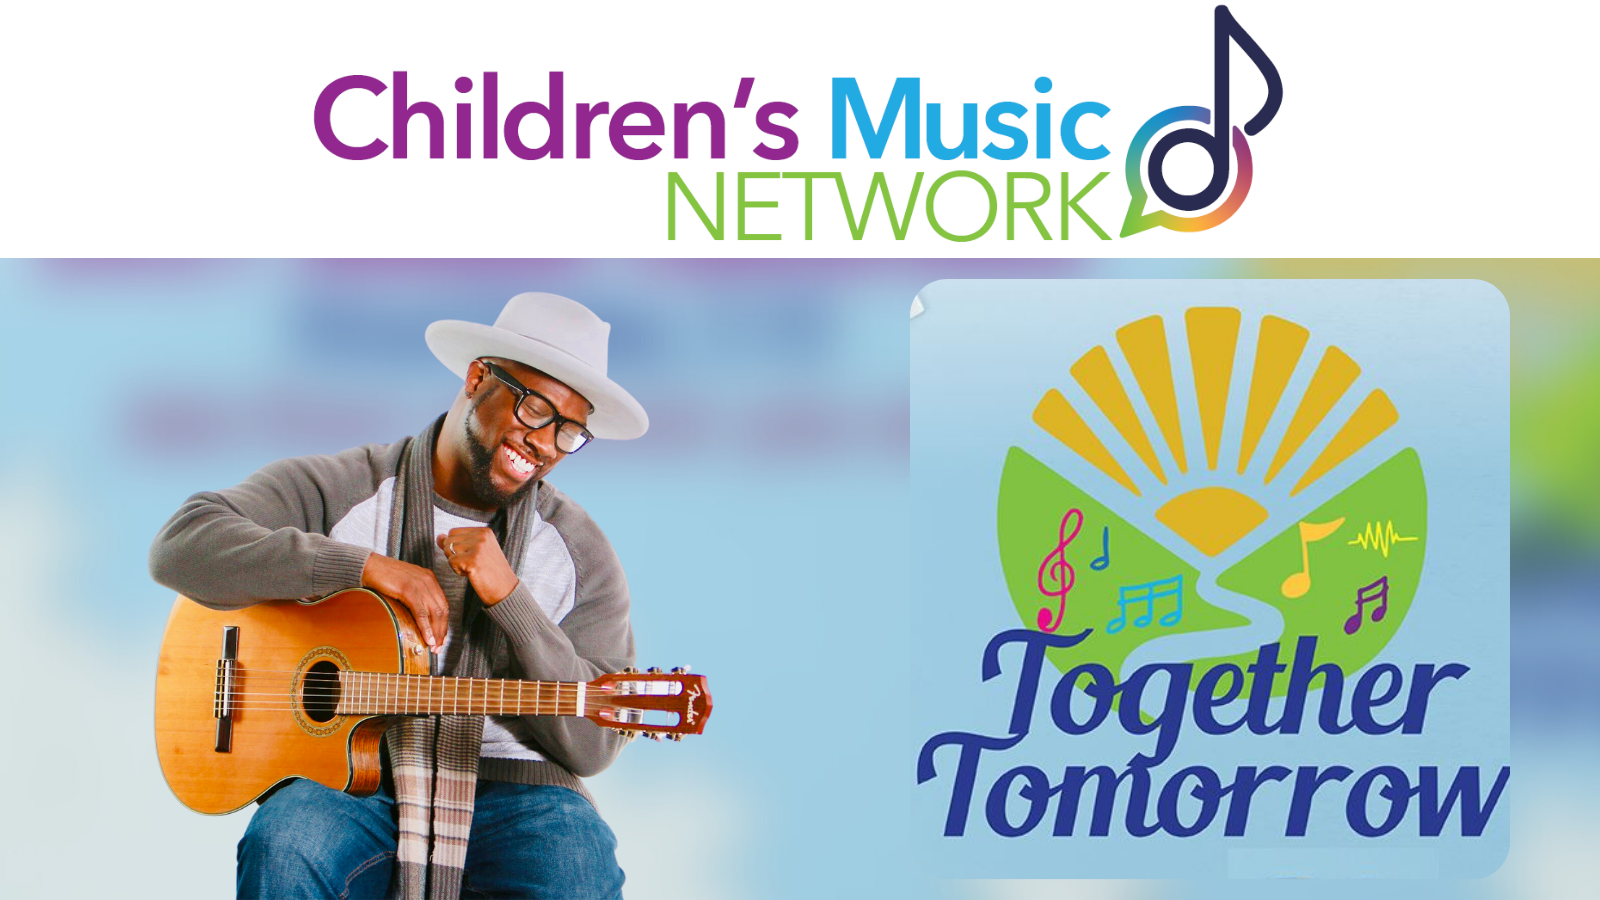 Kicking off the Children's Music Network Conference